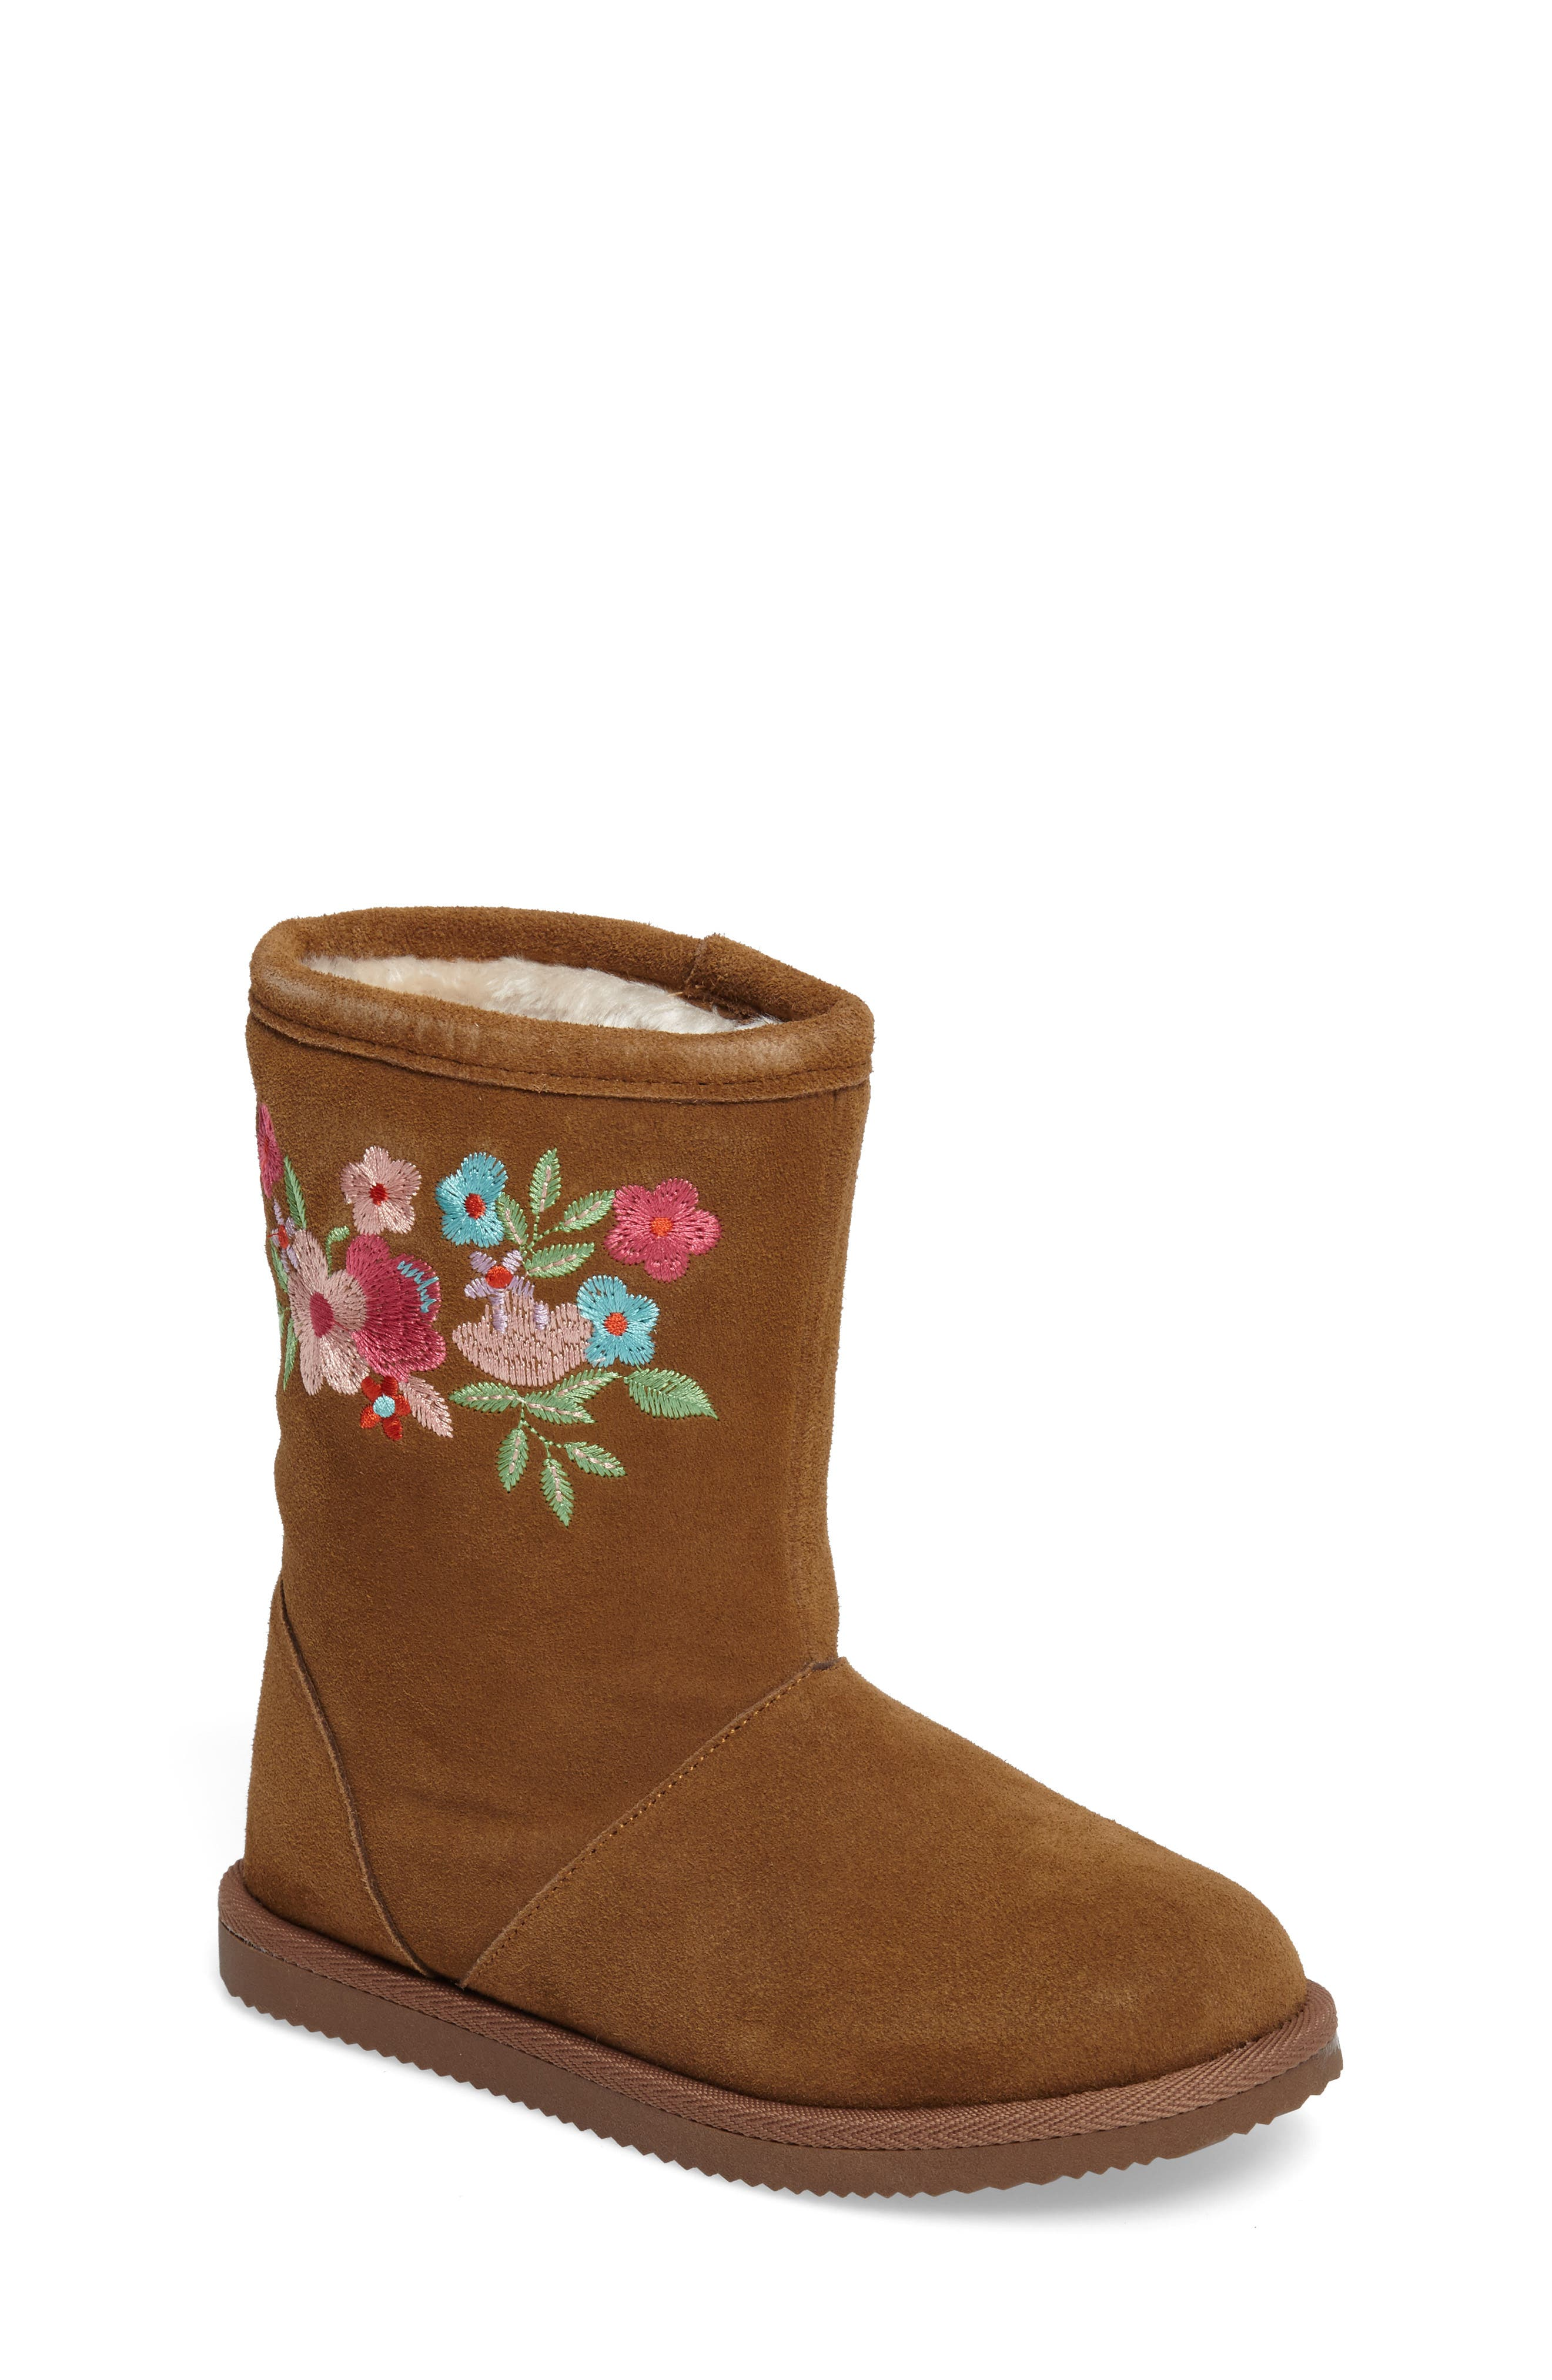 Aline Embroidered Faux Fur Boot,                         Main,                         color, Chestnut Suede